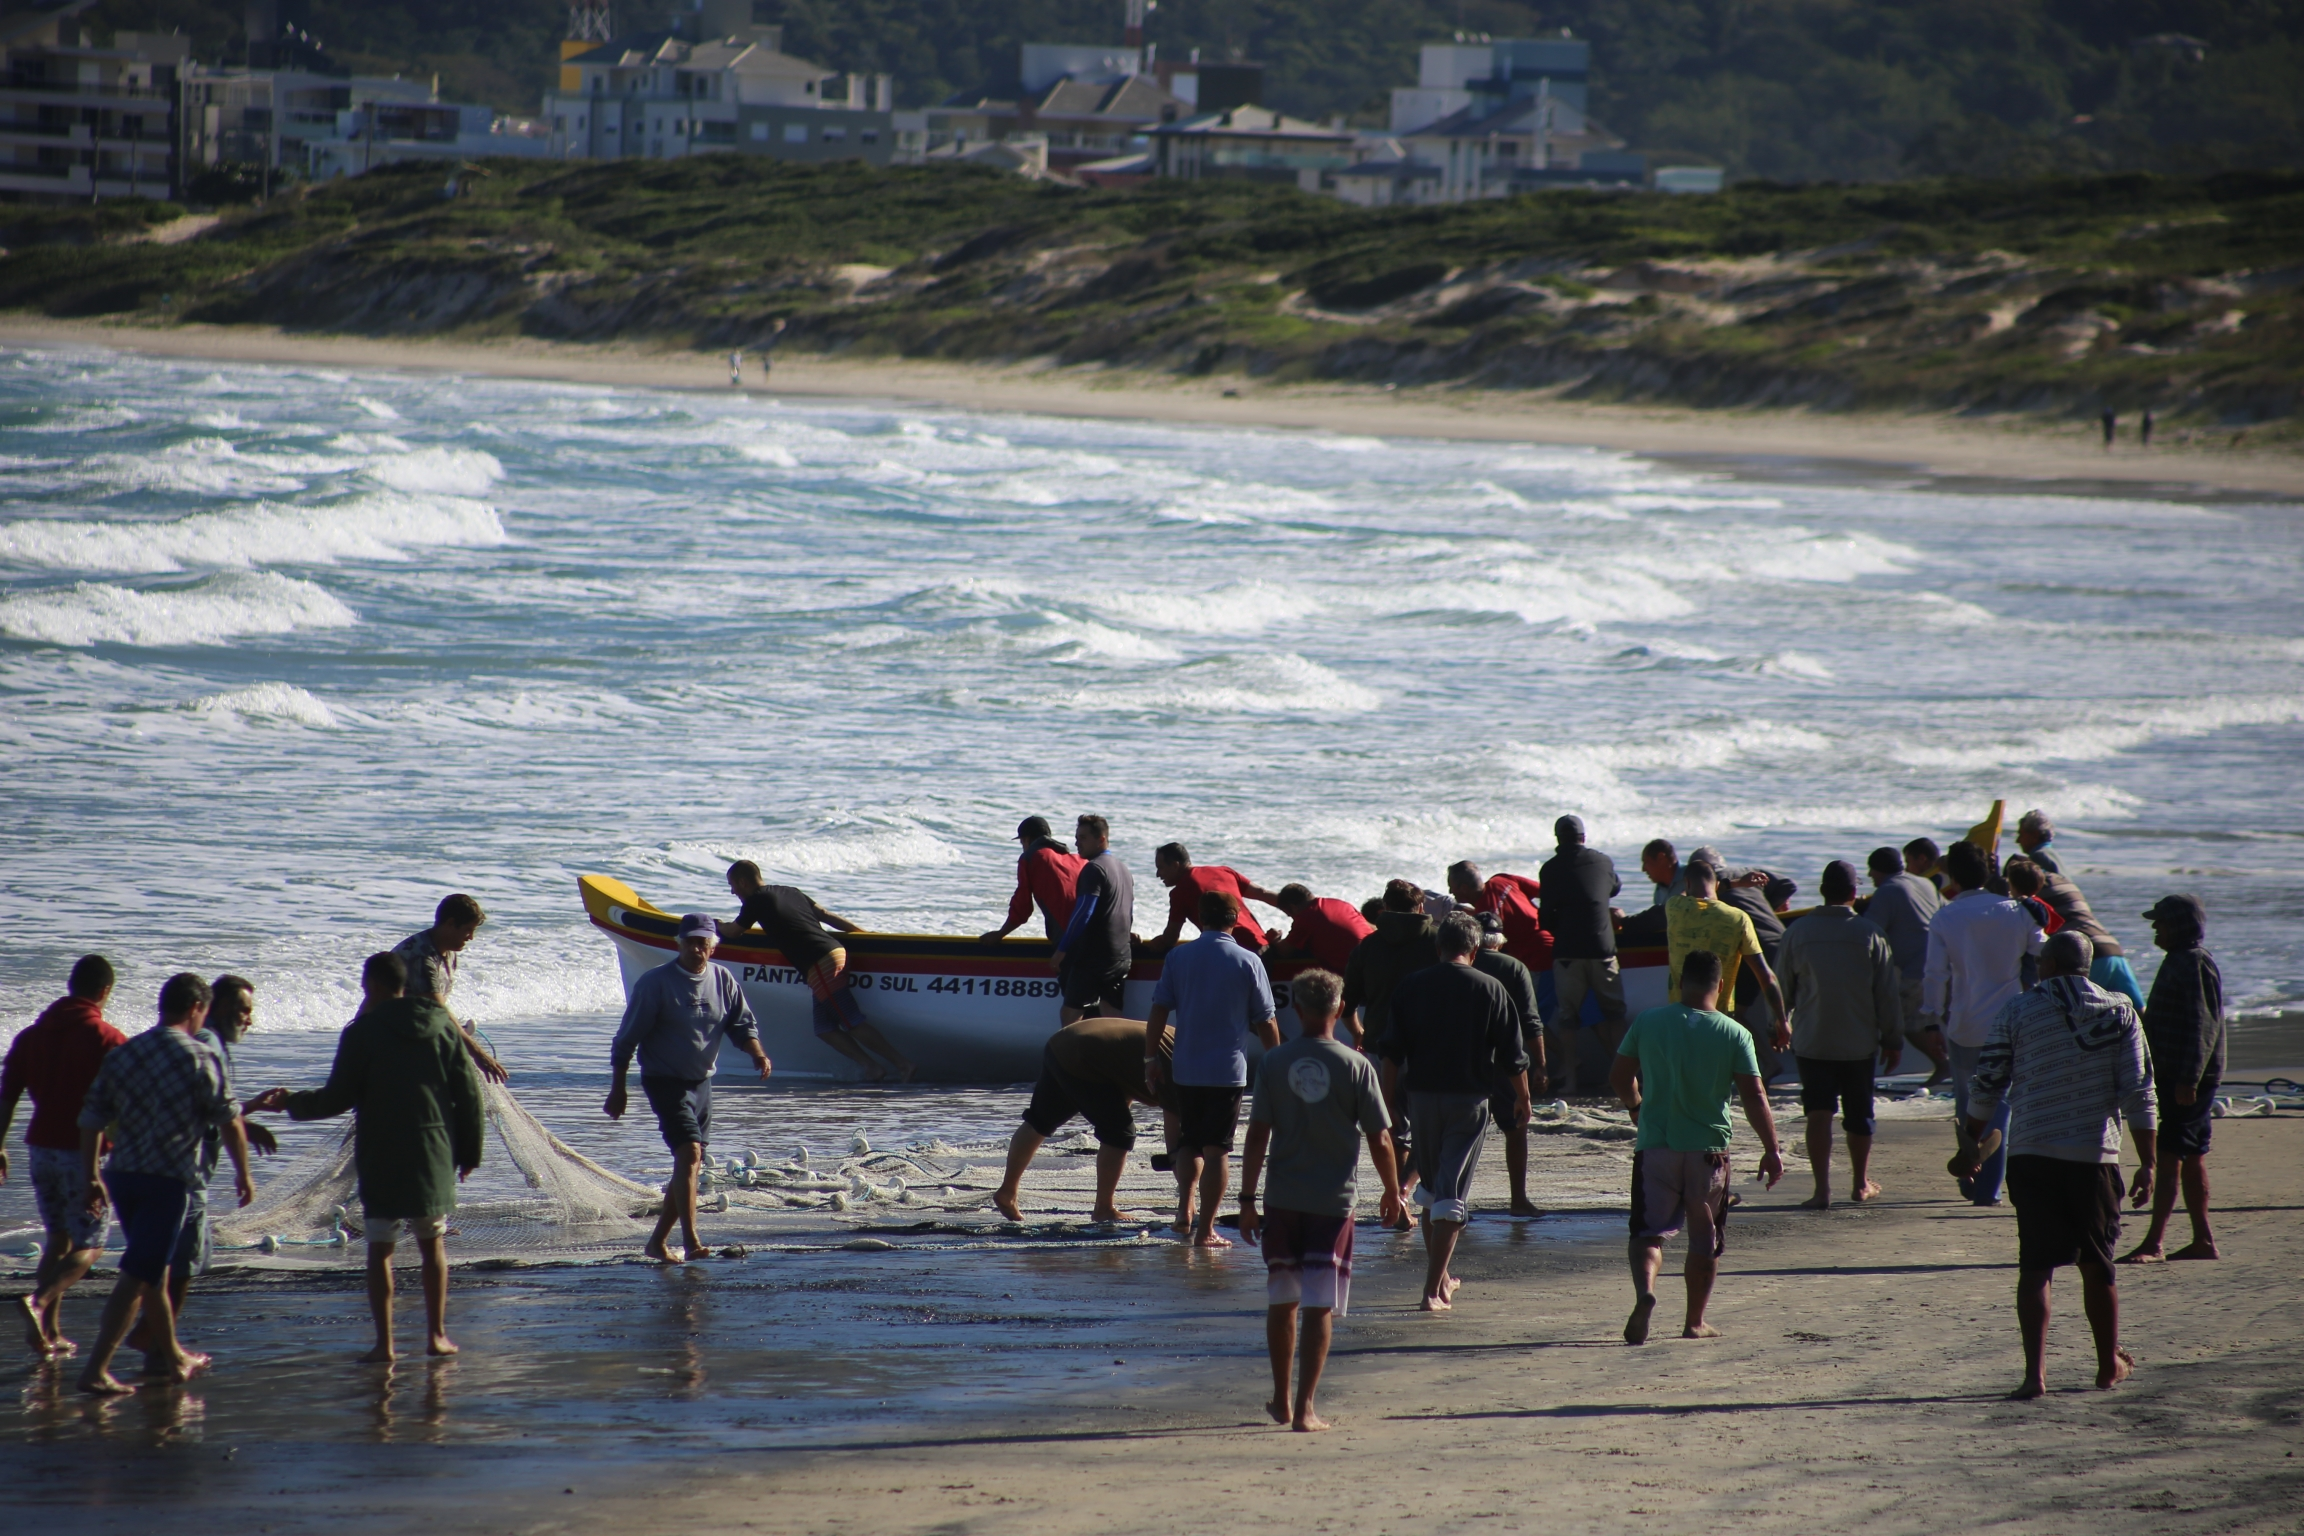 Fisherfolk meet at the sea to catch tainha in Pantano do Sul, Brazil.